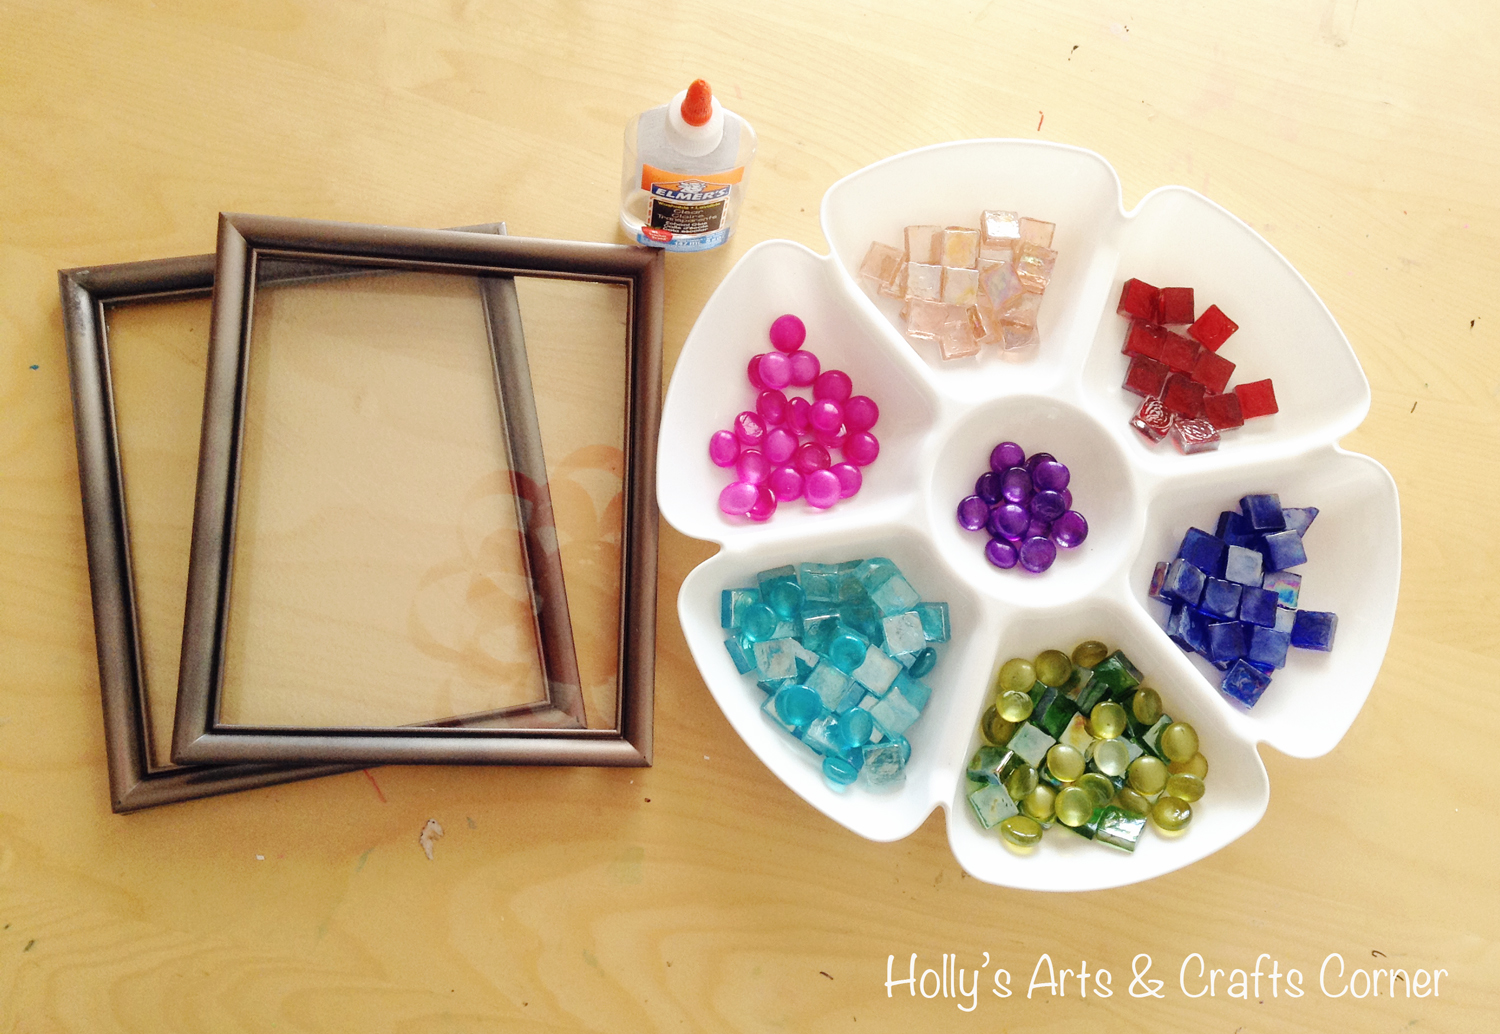 Hollys Arts And Crafts Corner Craft Project Diy Faux Stained